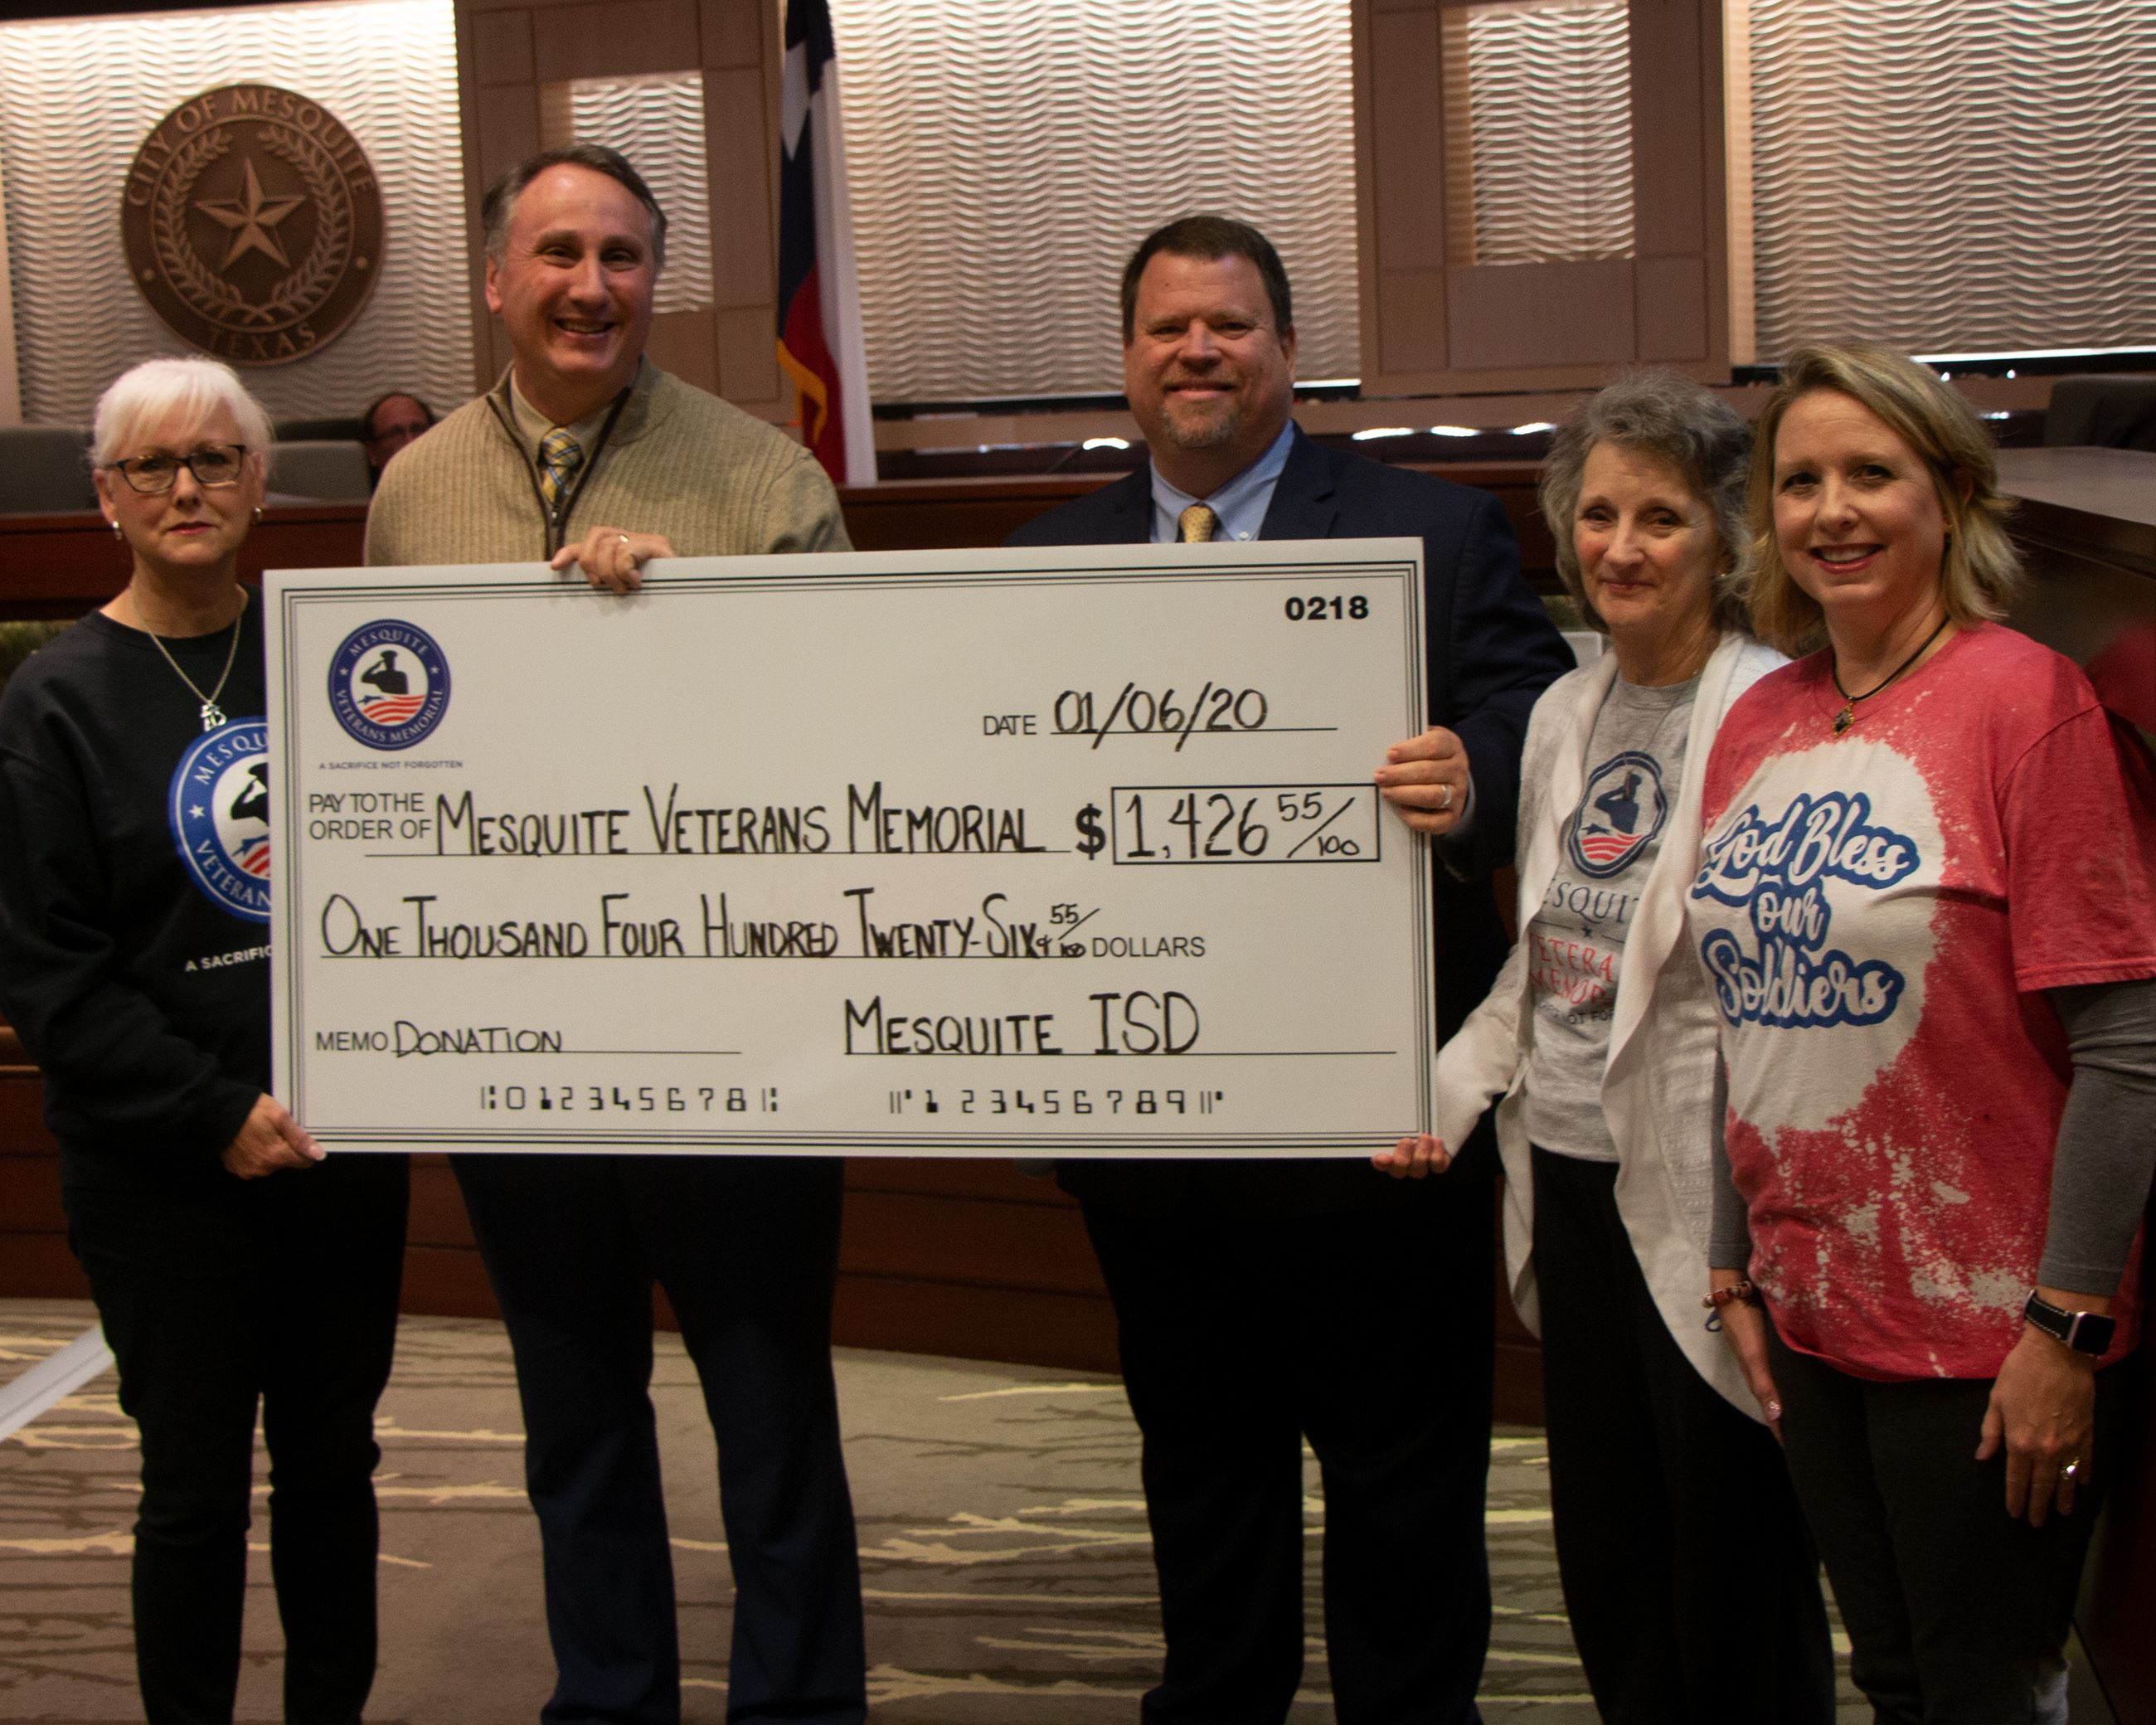 1-6-20 Council Photos - Mesquite ISD Donation to Veterans Memorial